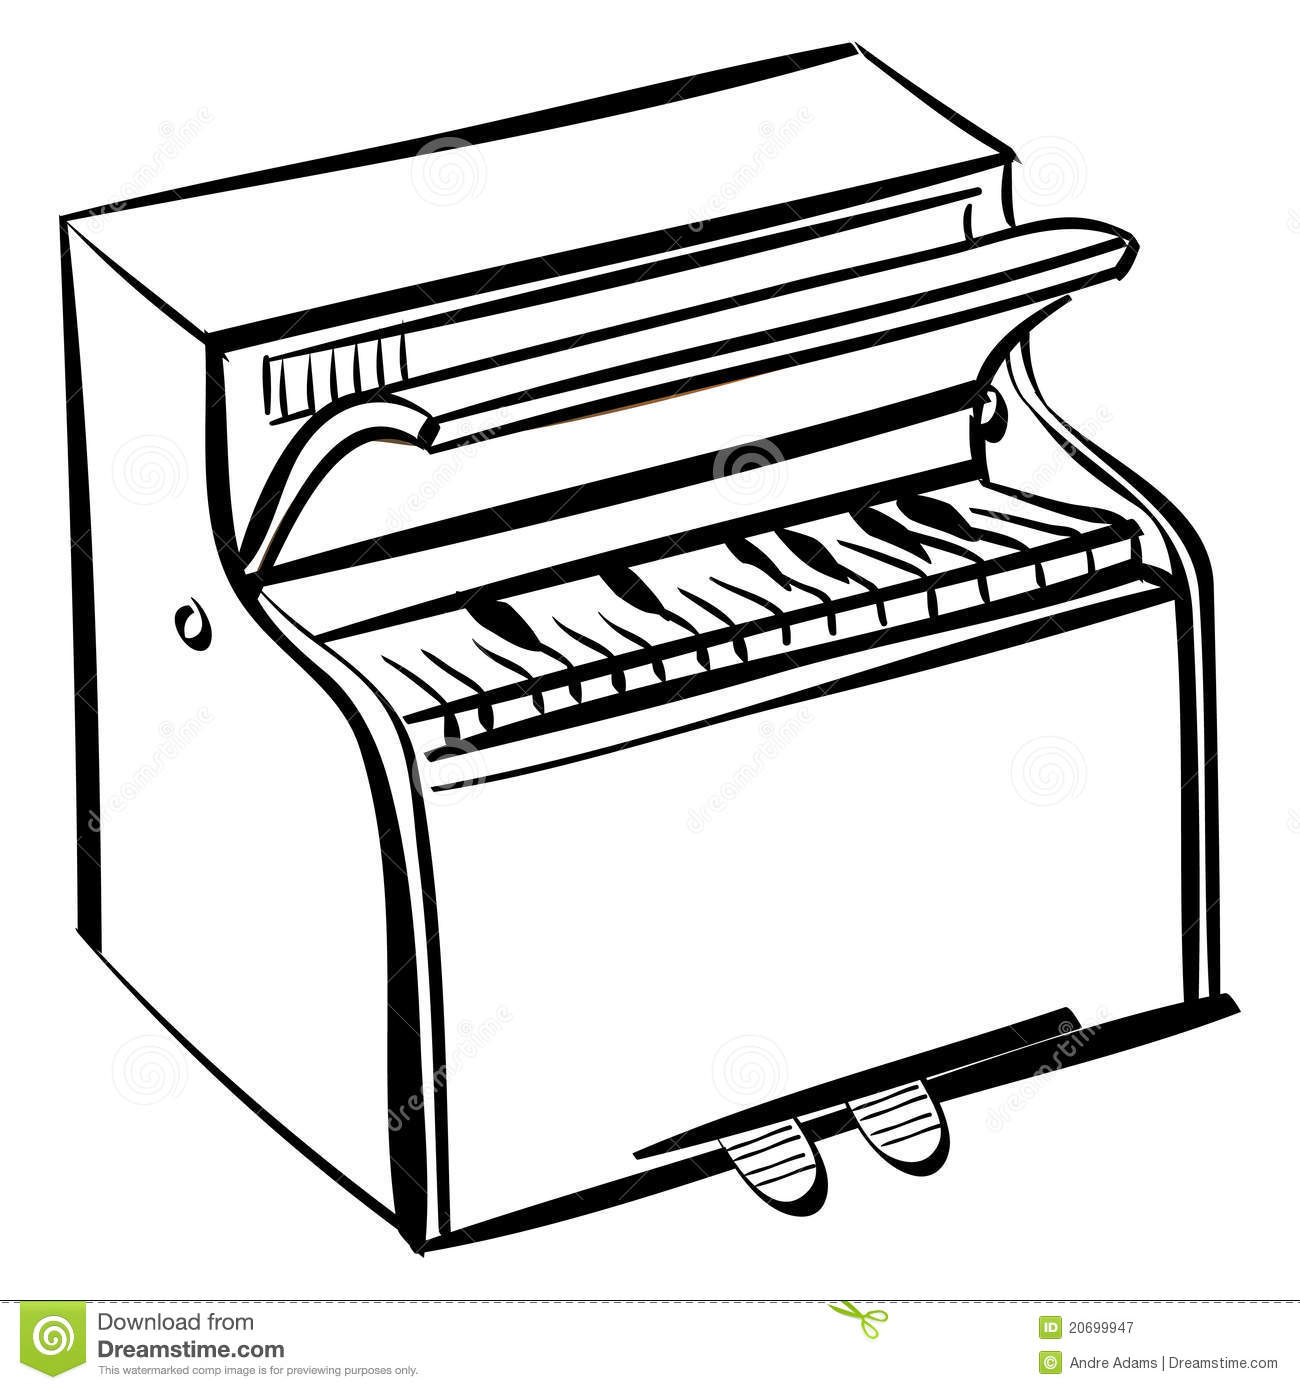 Piano Outline Royalty Free Stock Photography